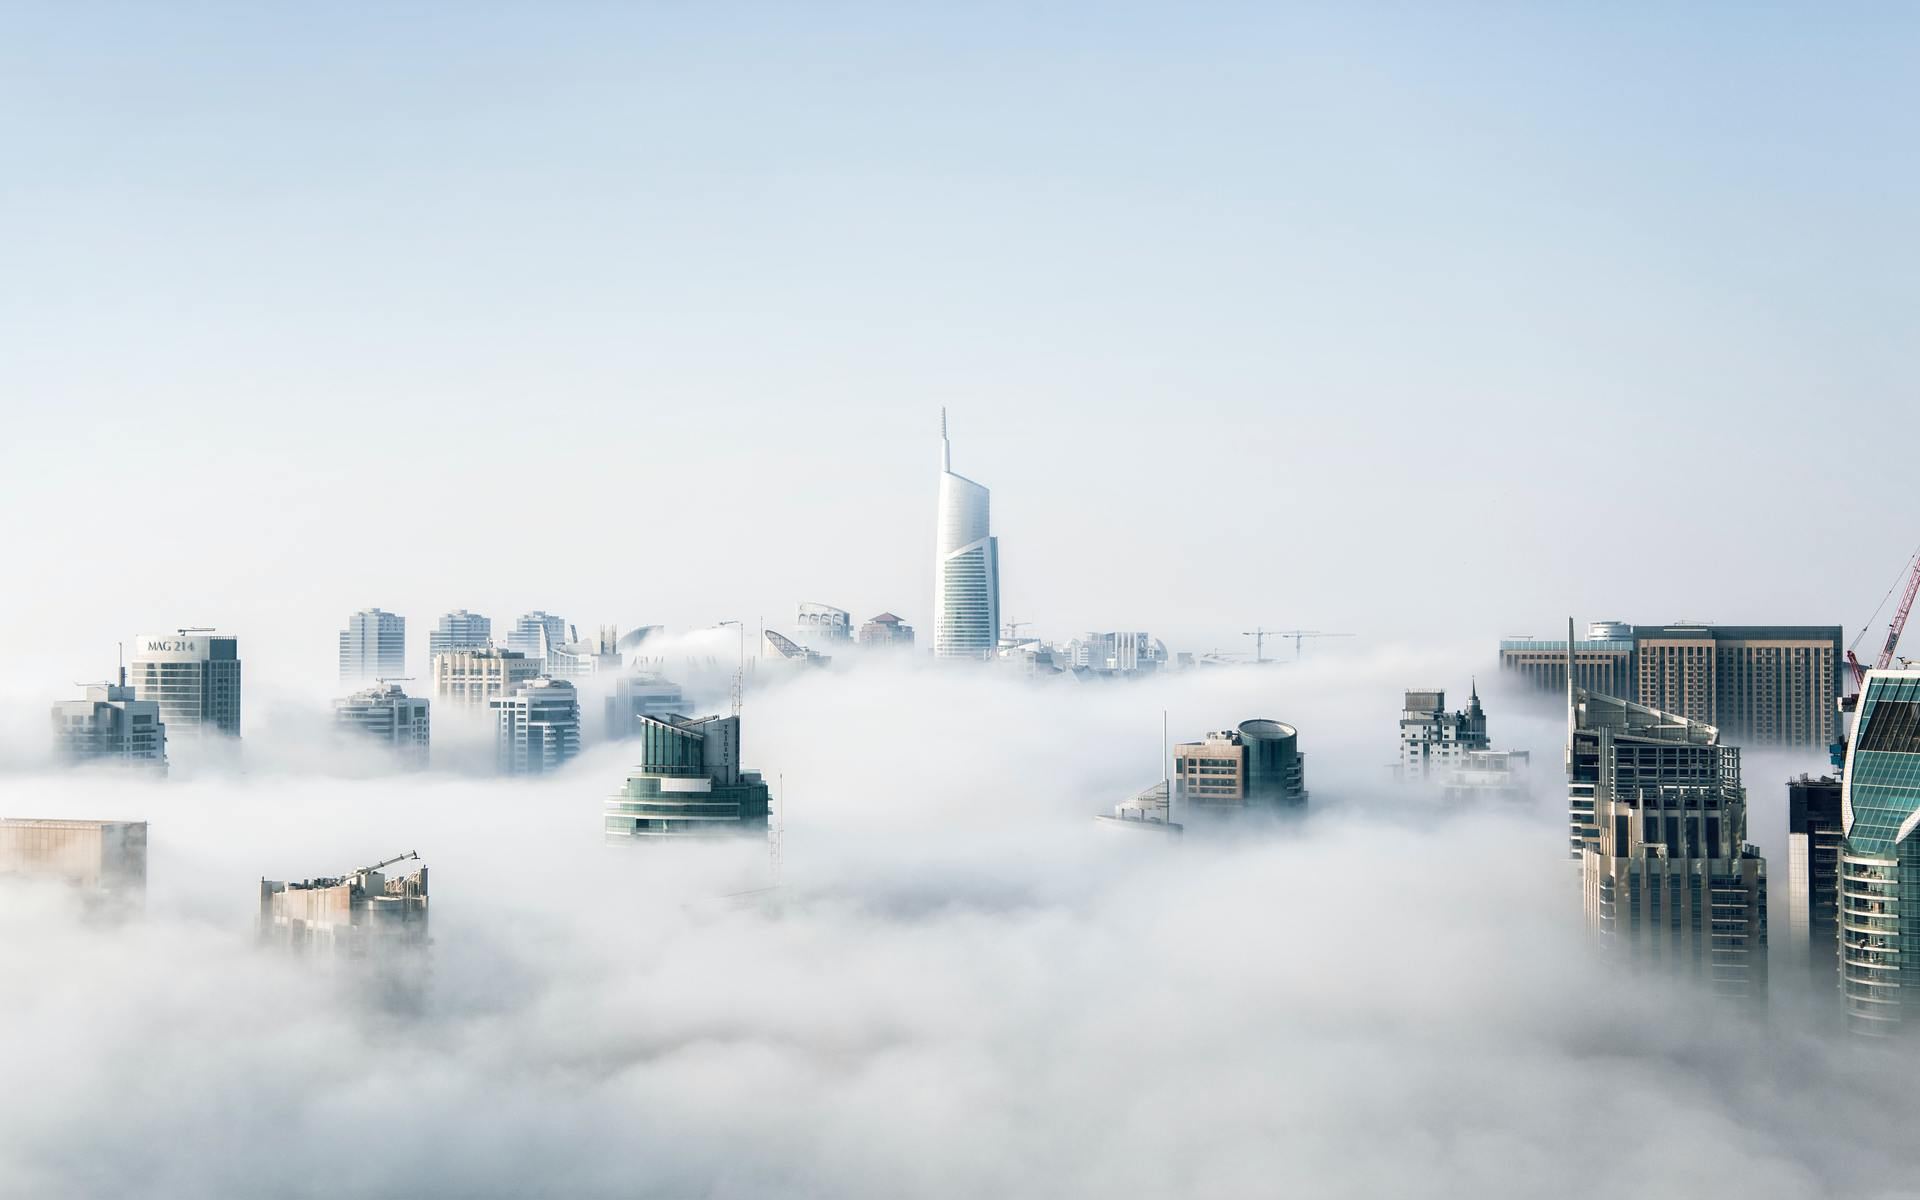 In the current business environment, it is important to take into account Environmental, Social, and Governance (ESG) reporting considerations and potential avenues for growth through embracing ESG investing.